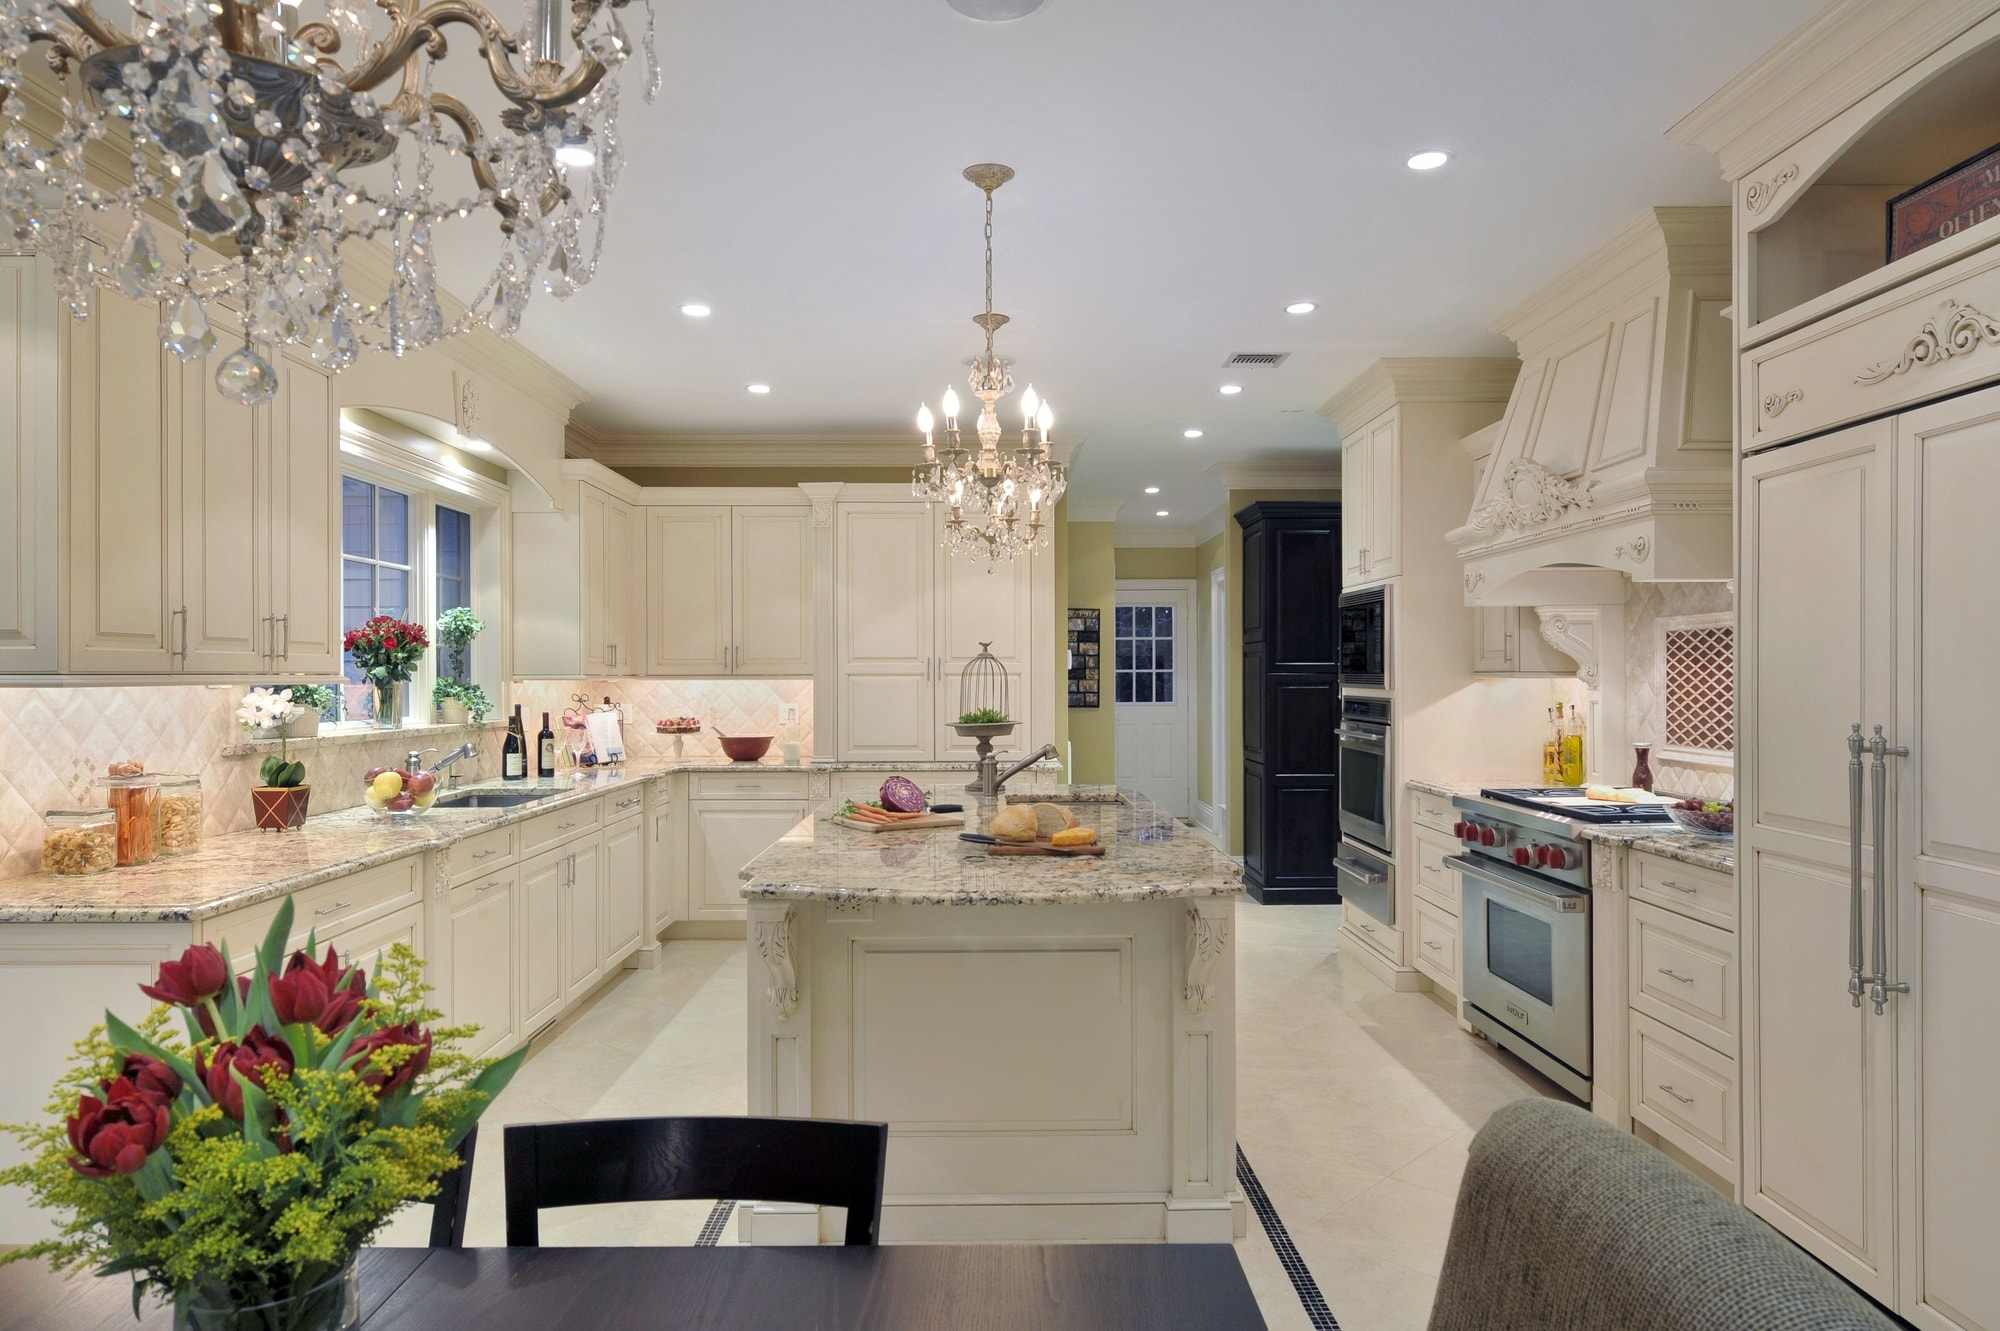 Traditional style kitchen with high ceiling and spacious floor